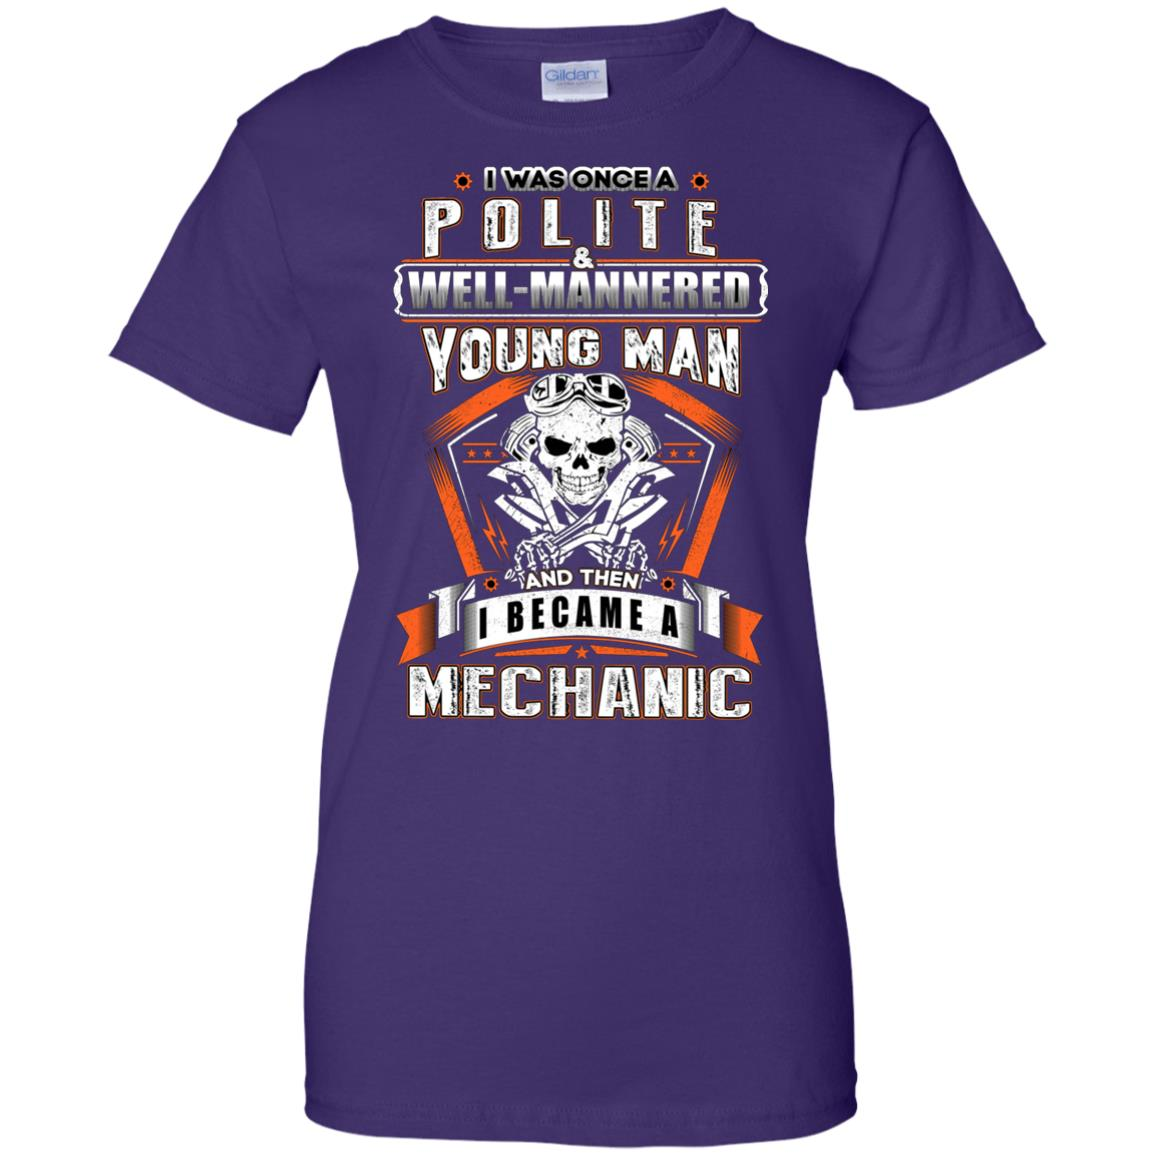 Polite Mechanic - Apparel